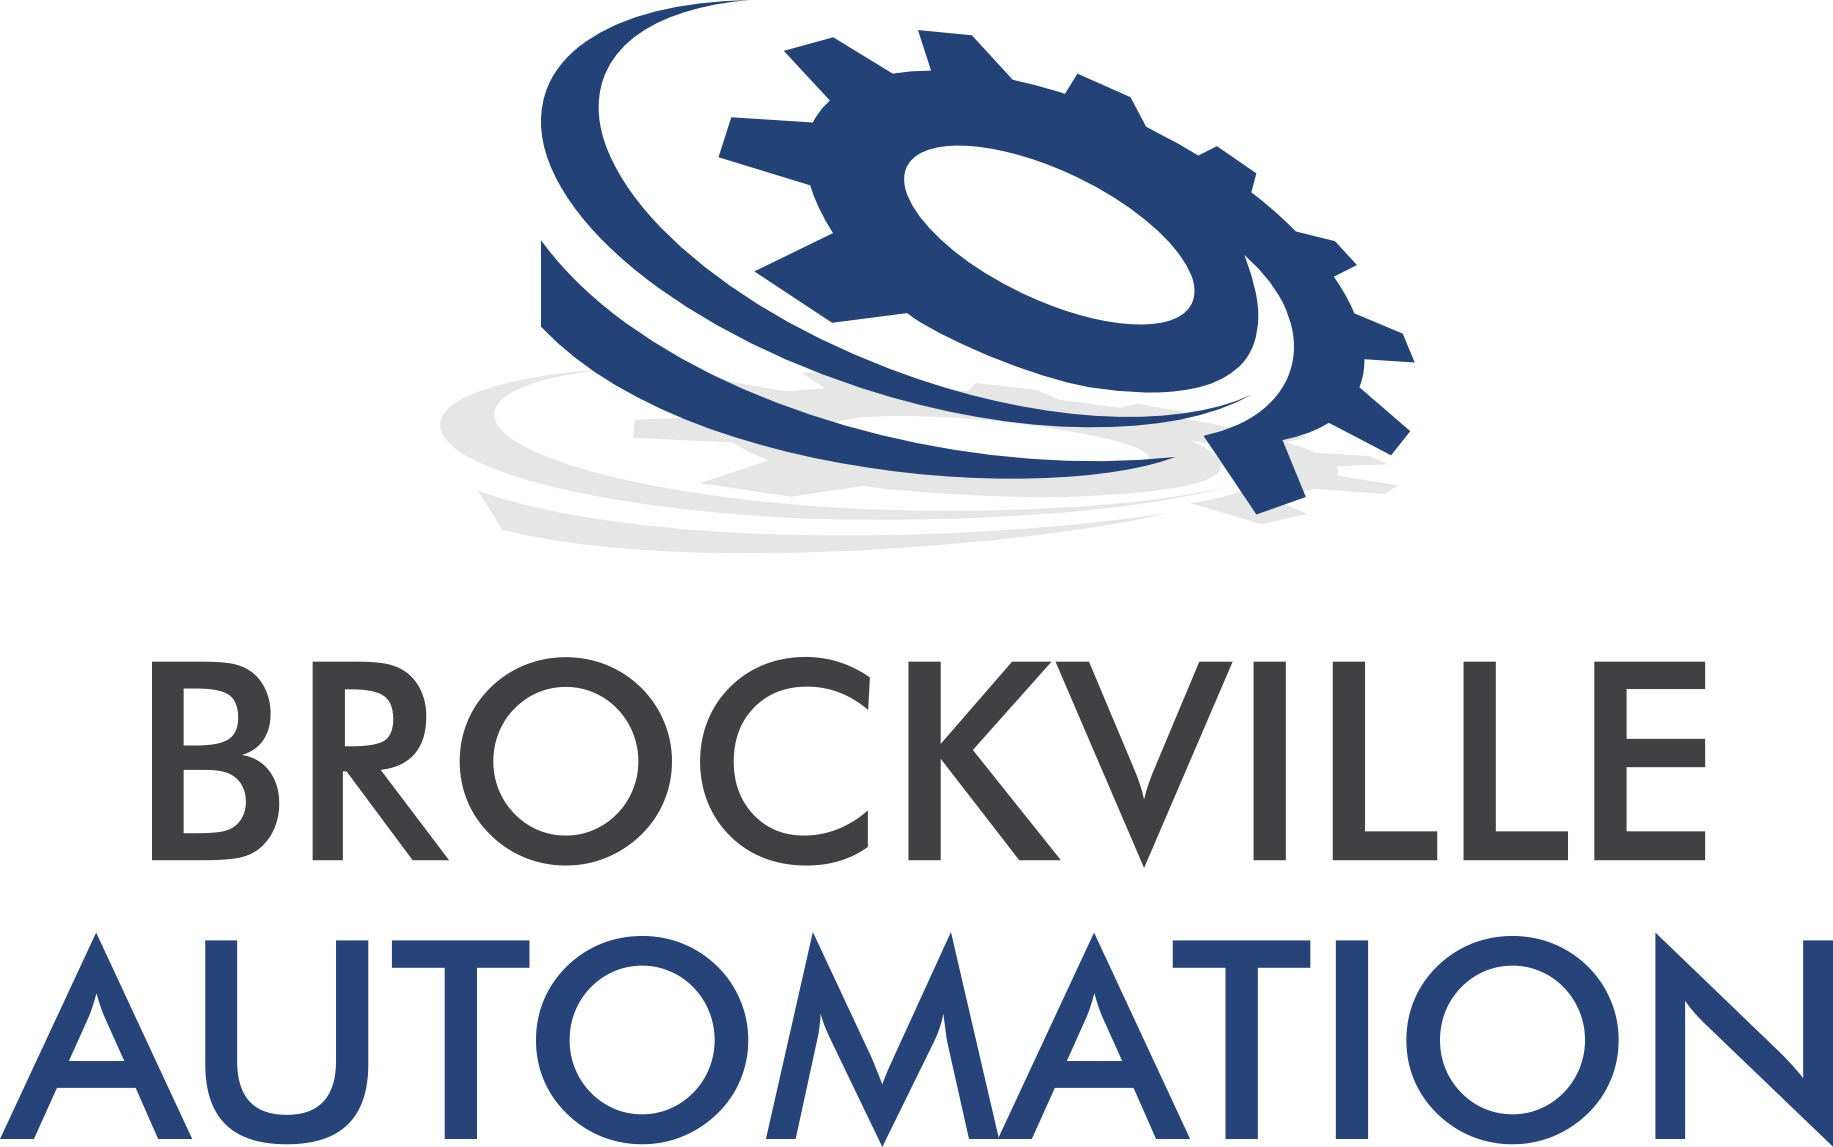 Brockville Automation